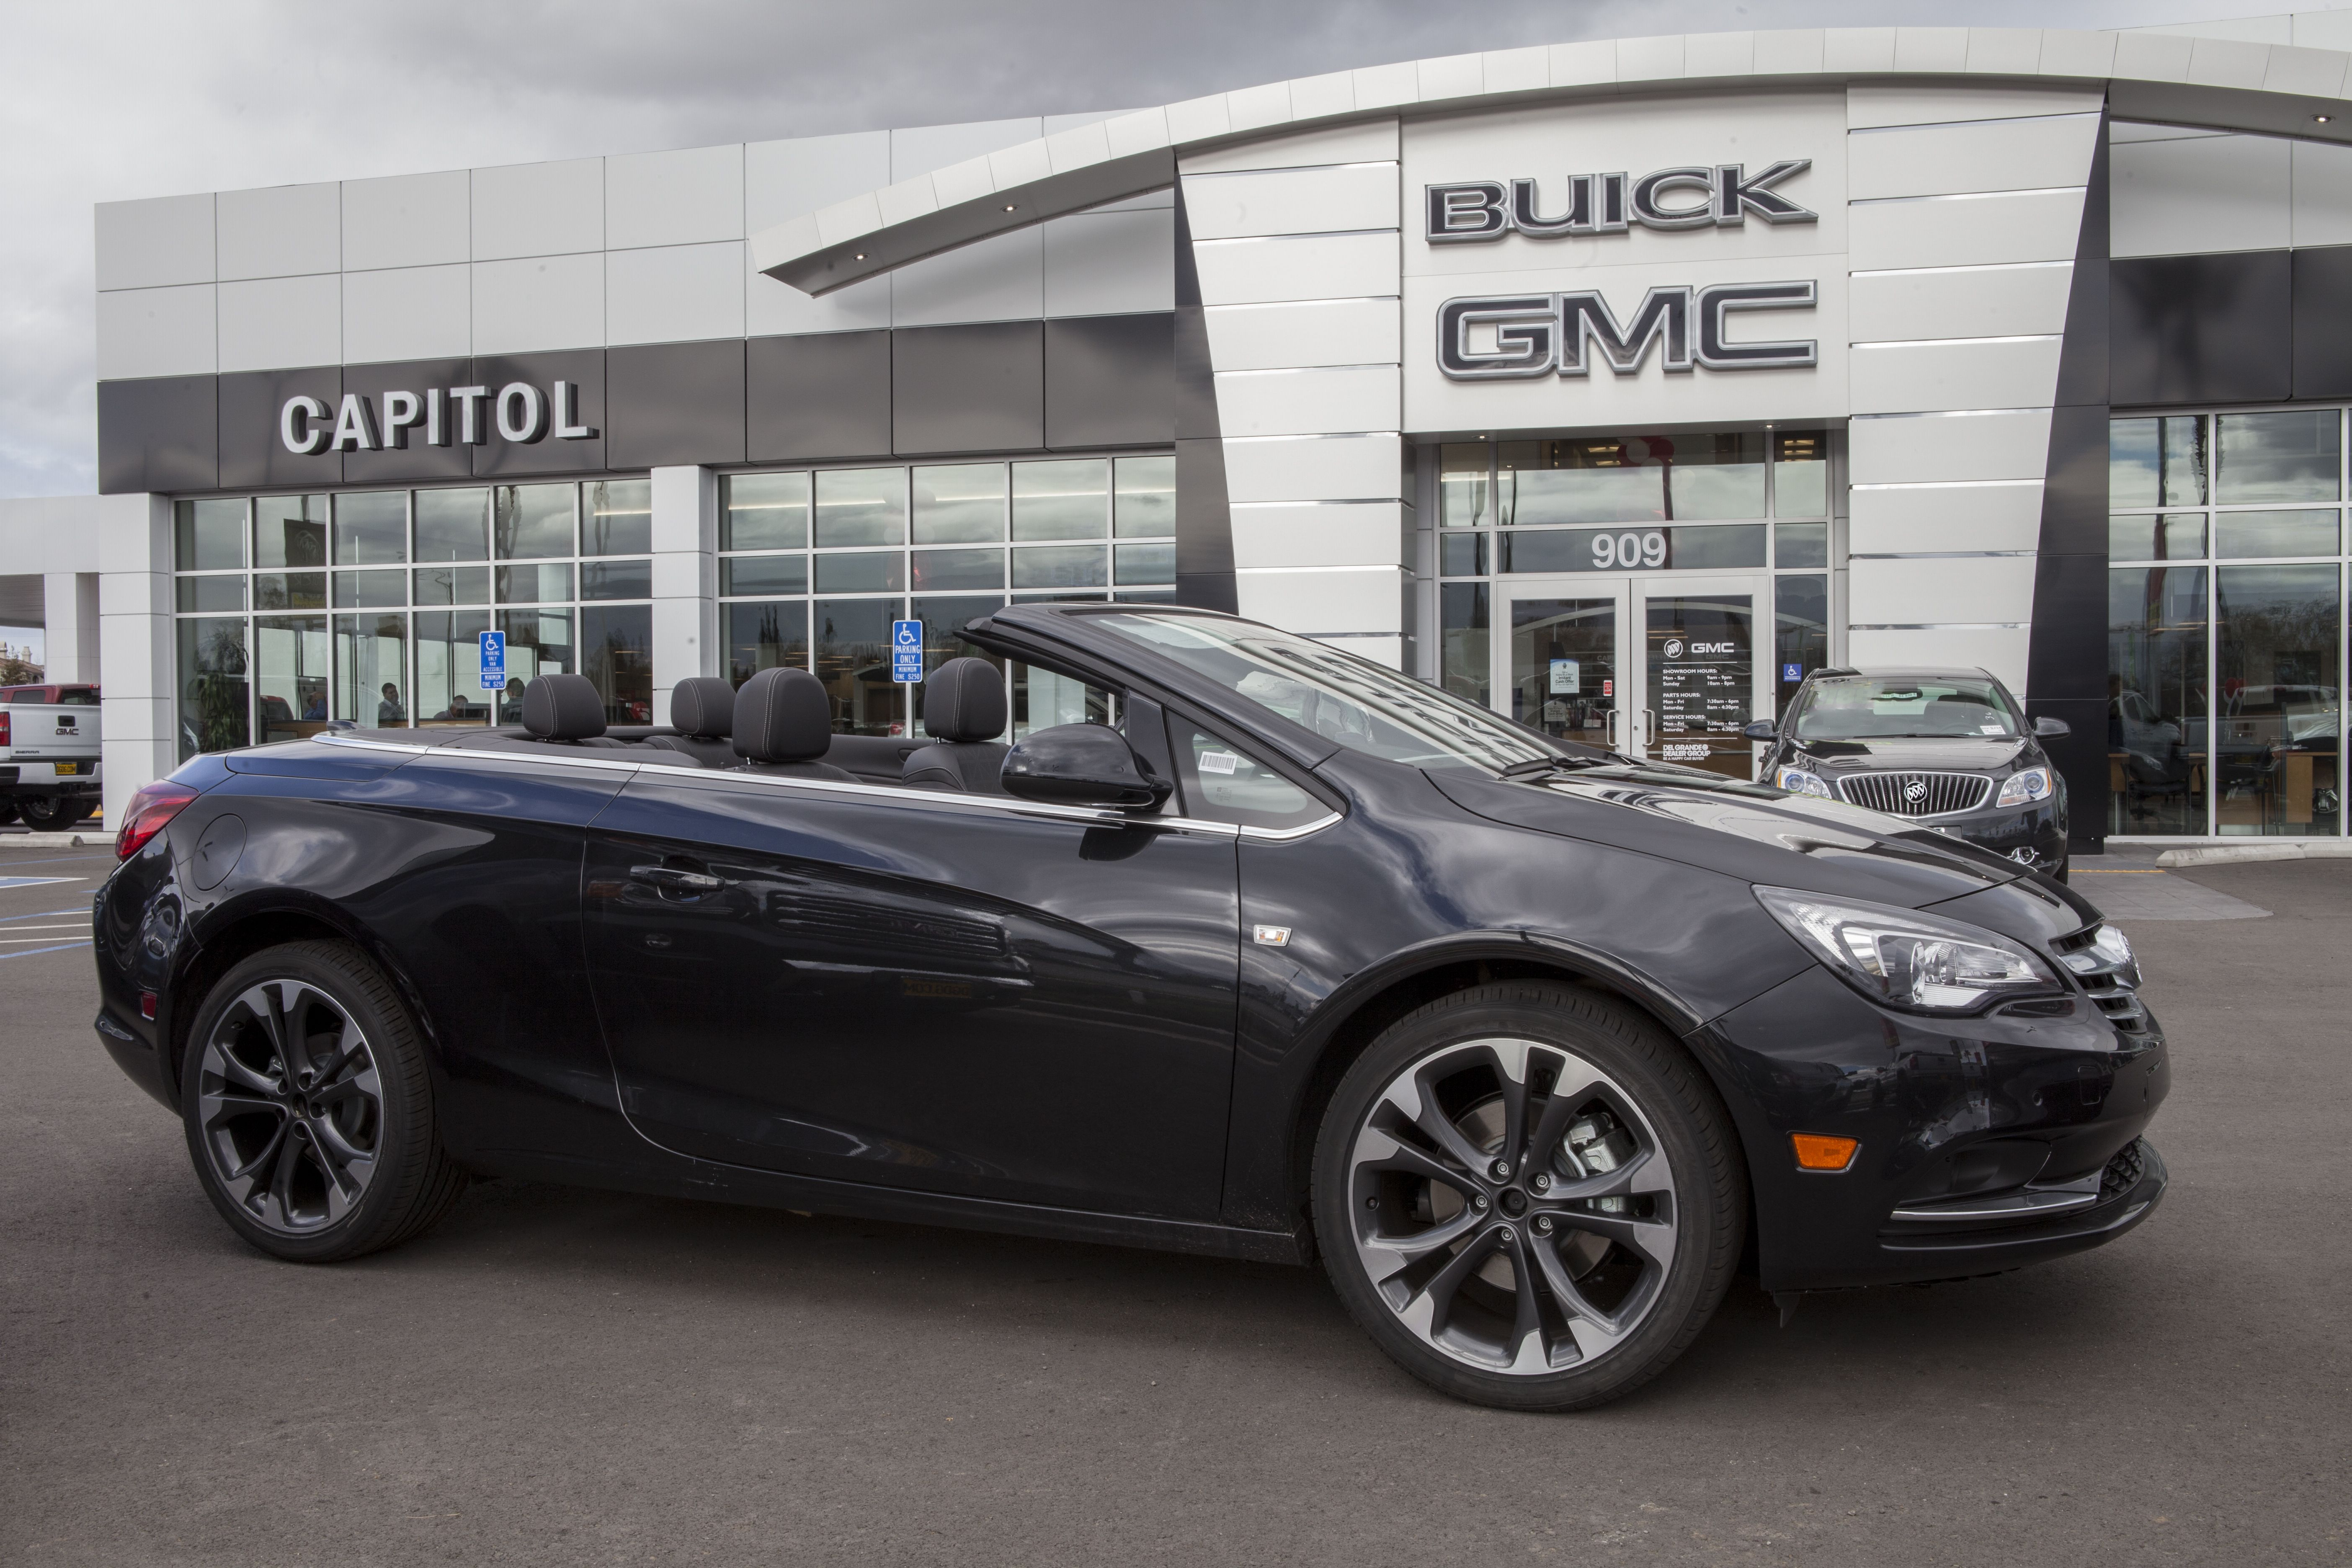 e check out the new BuickCascada in our showroom at